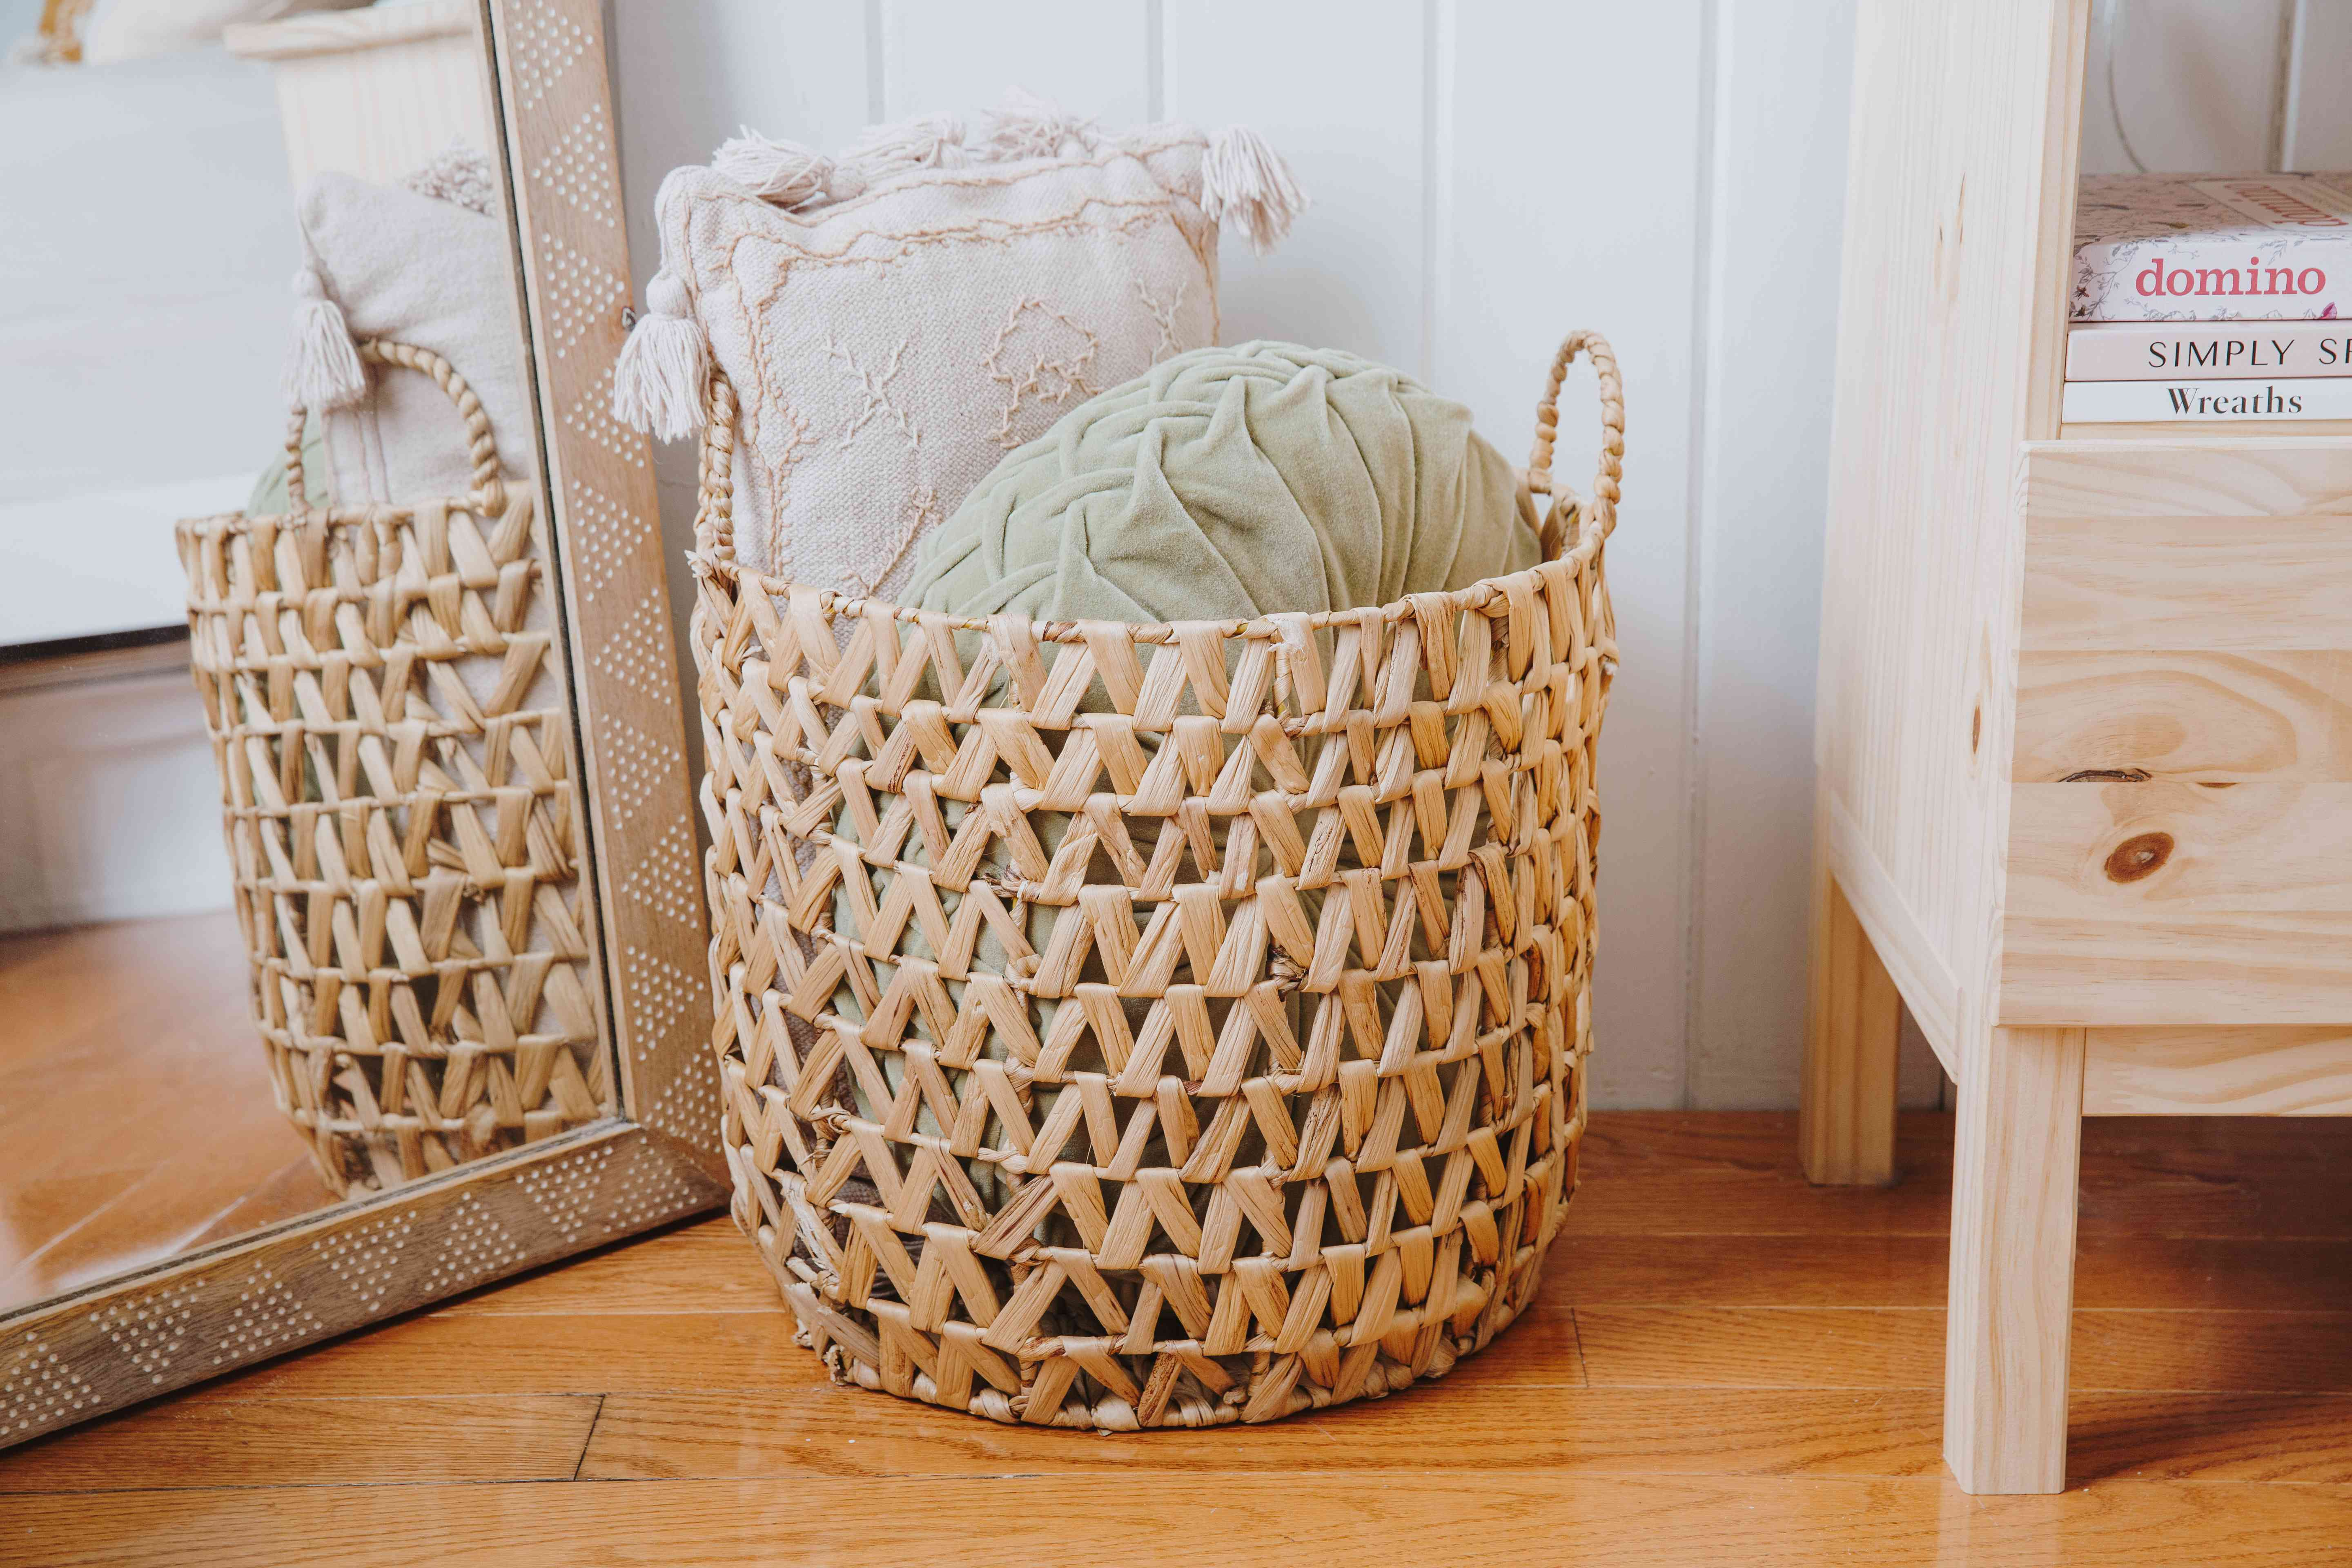 placing bed pillows in baskets